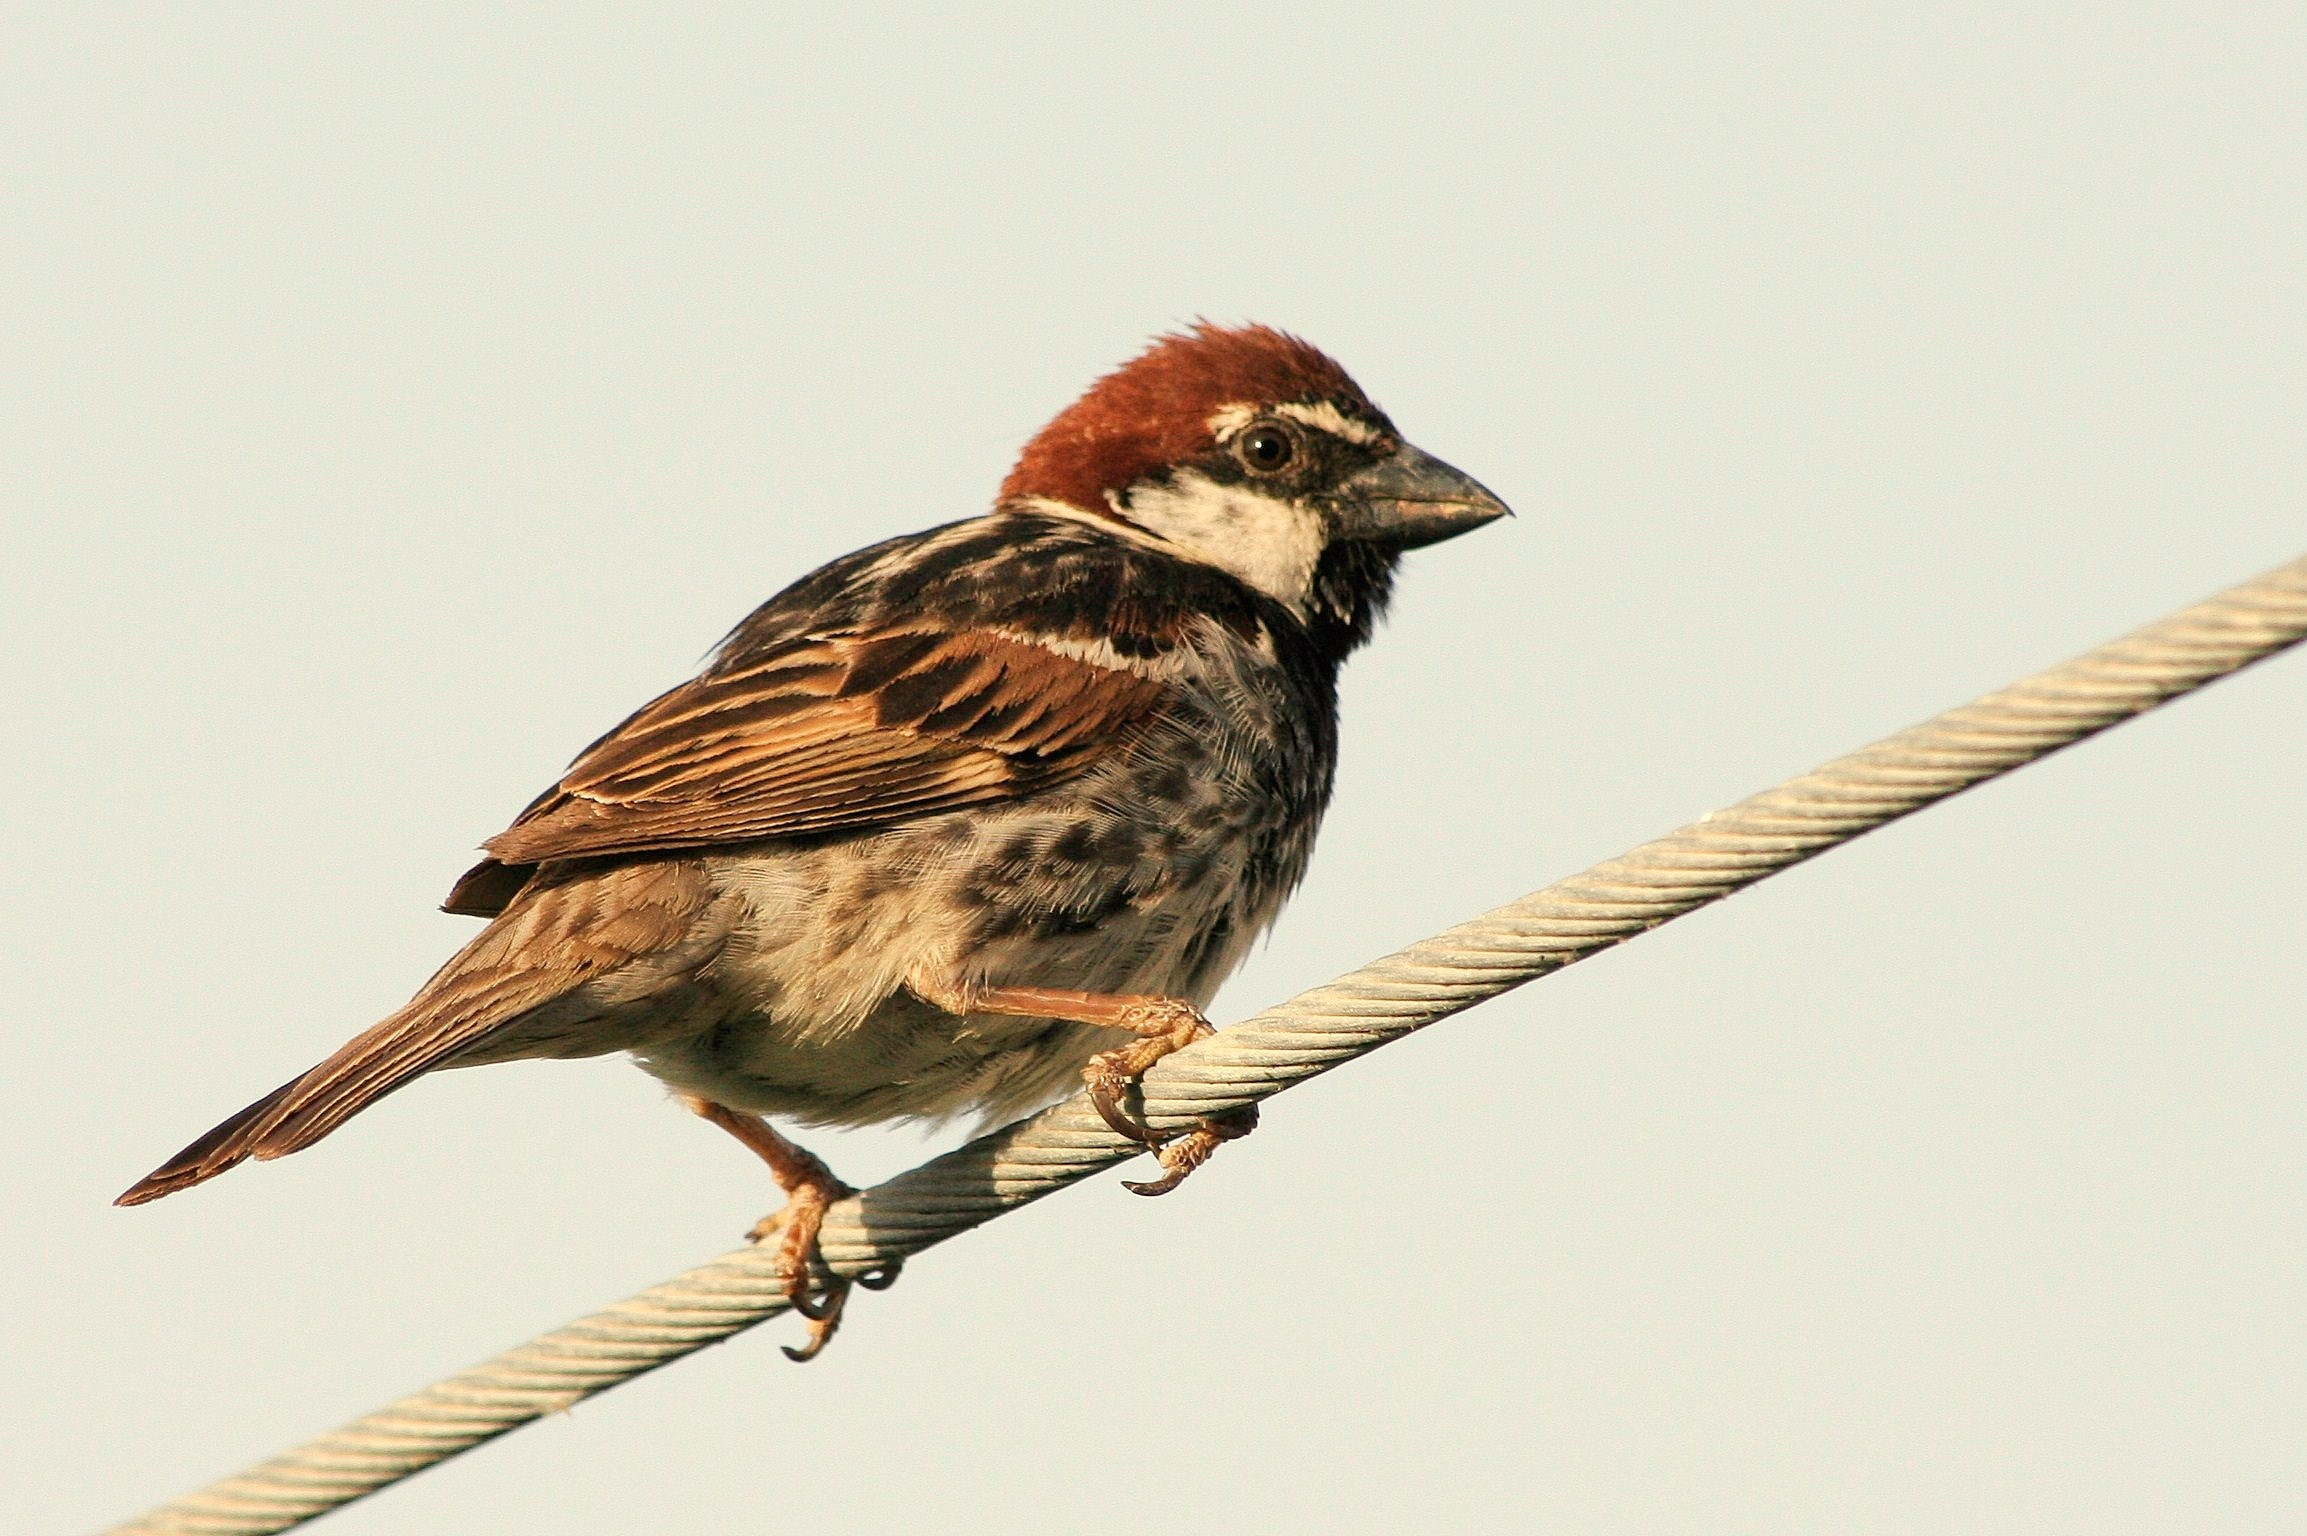 Spanish Sparrow wallpaper